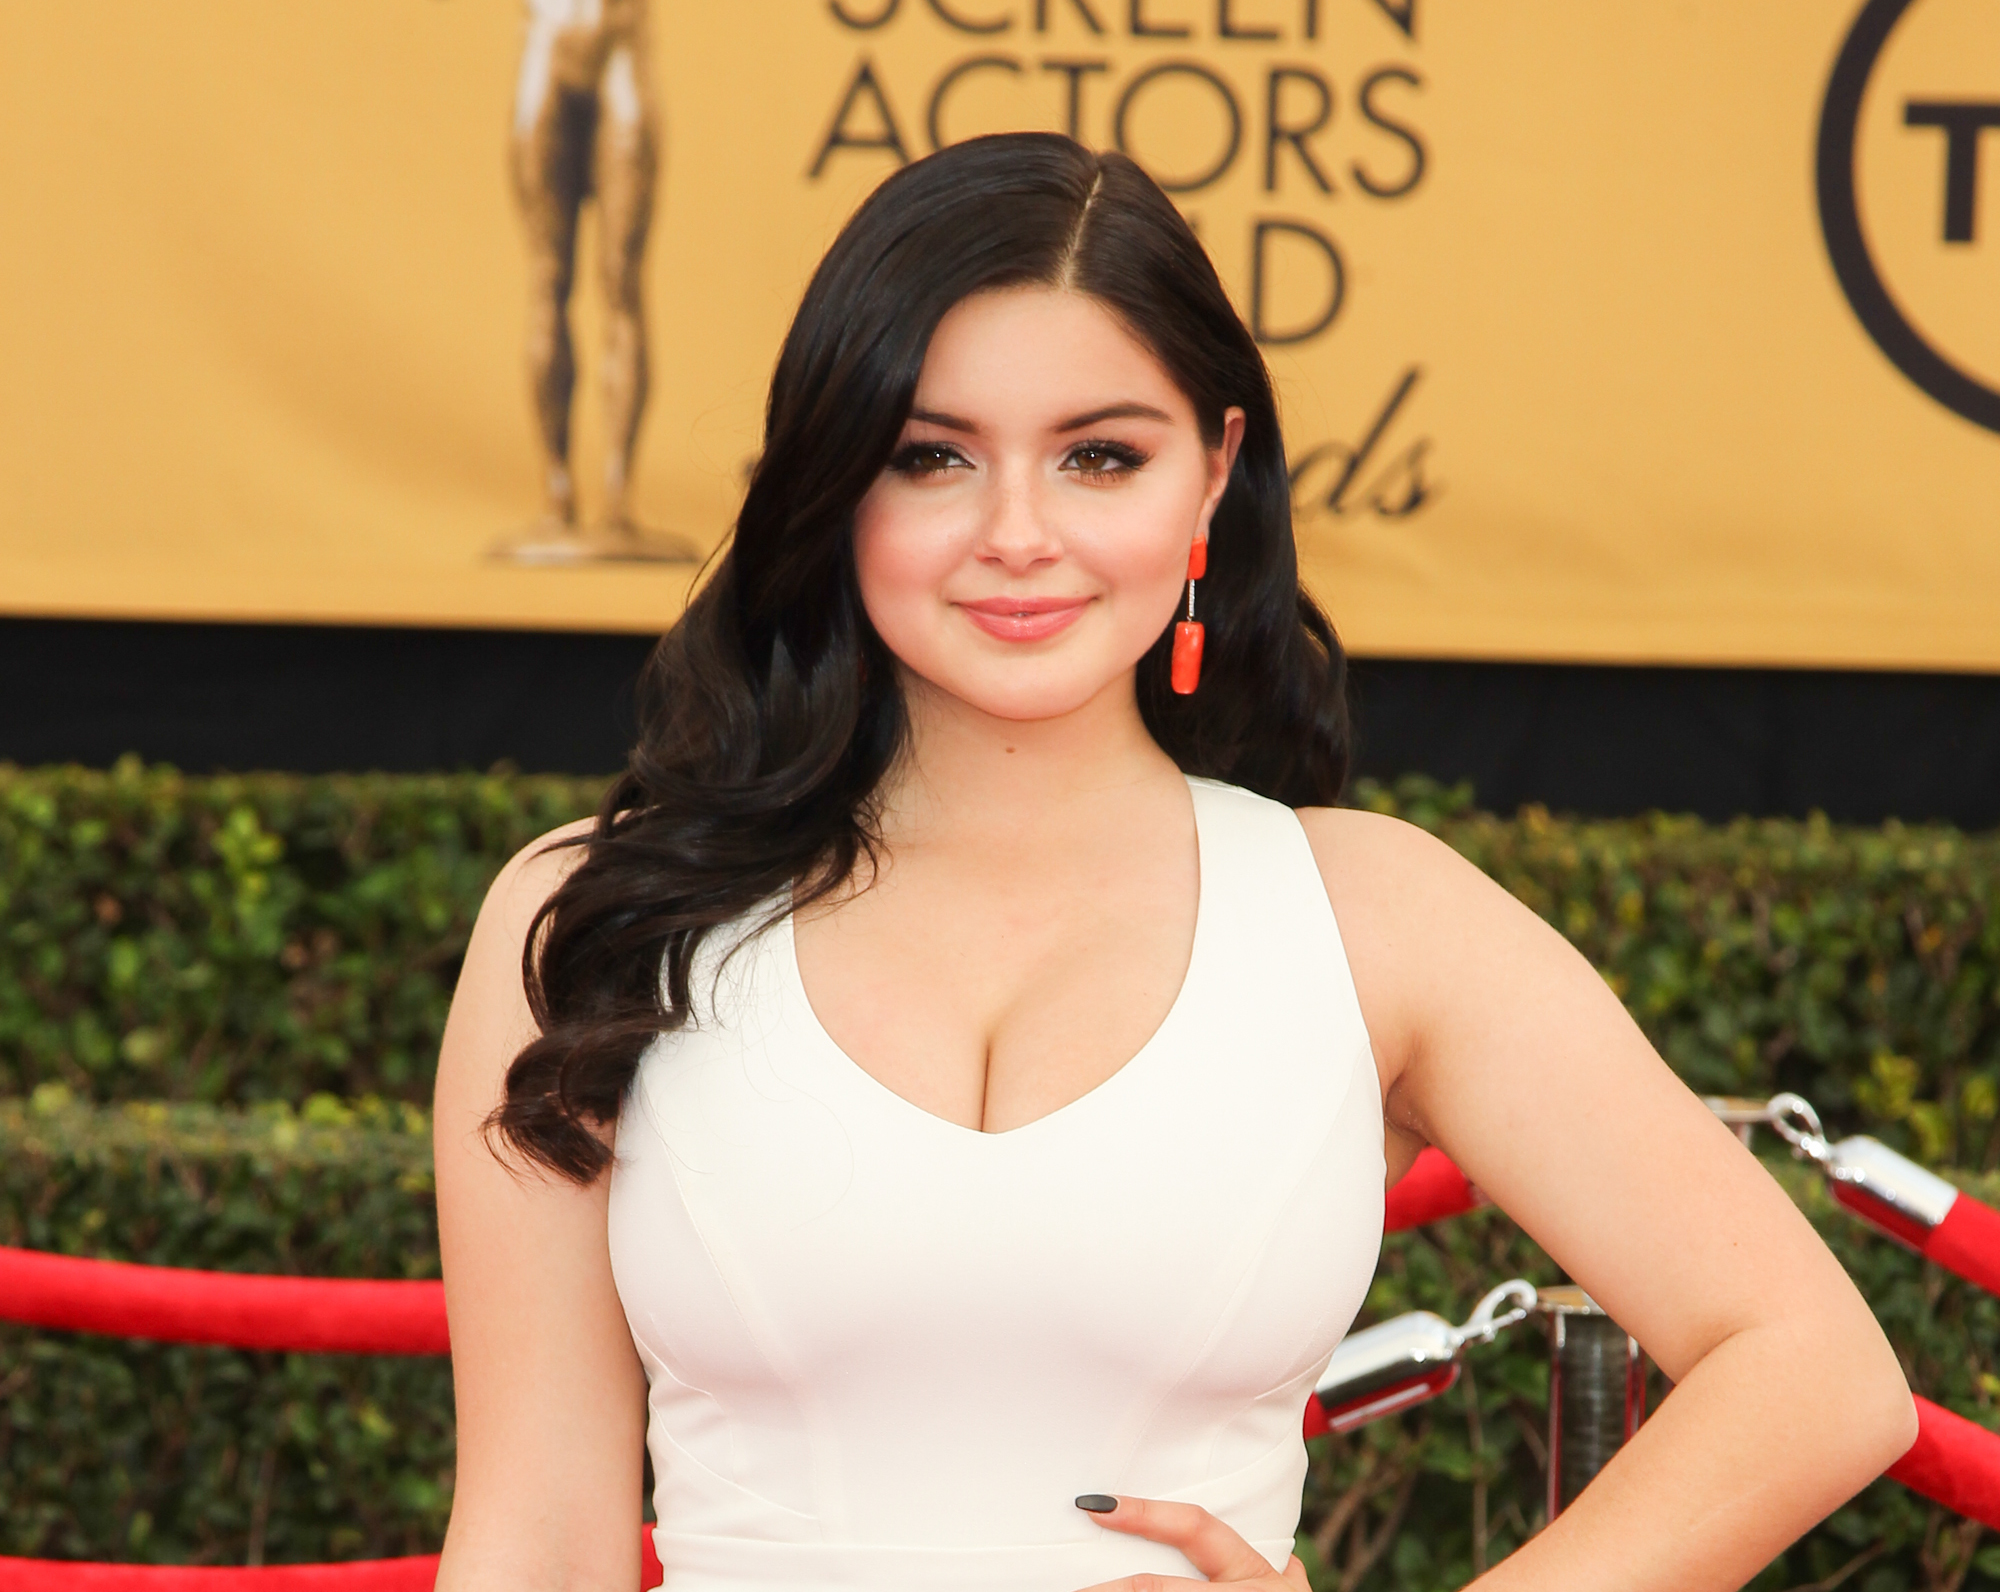 images Ariel winter boobs